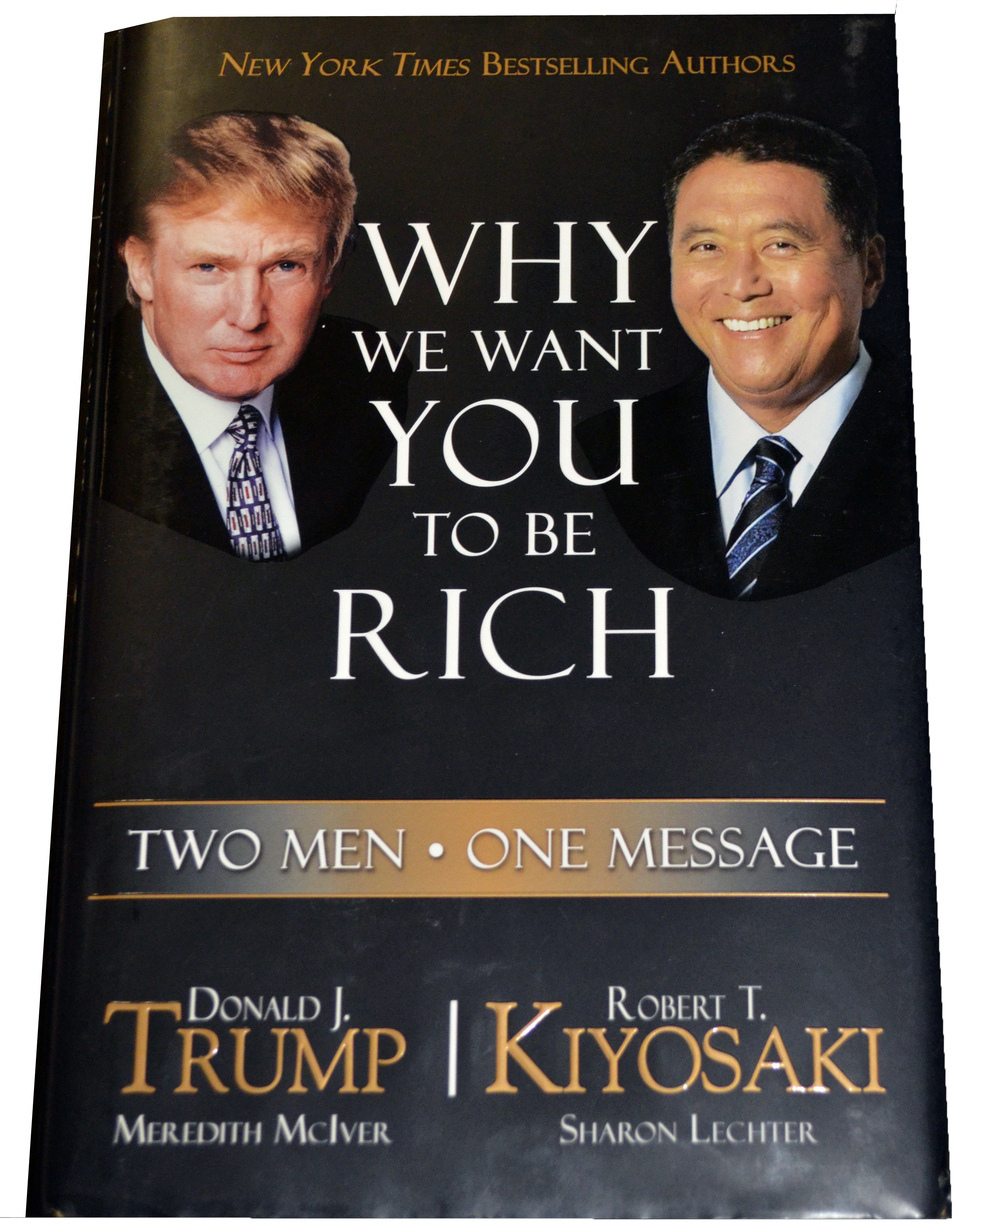 Why We Want You to Be Rich: Trump/Kiyosaki Hardcover LikeNew